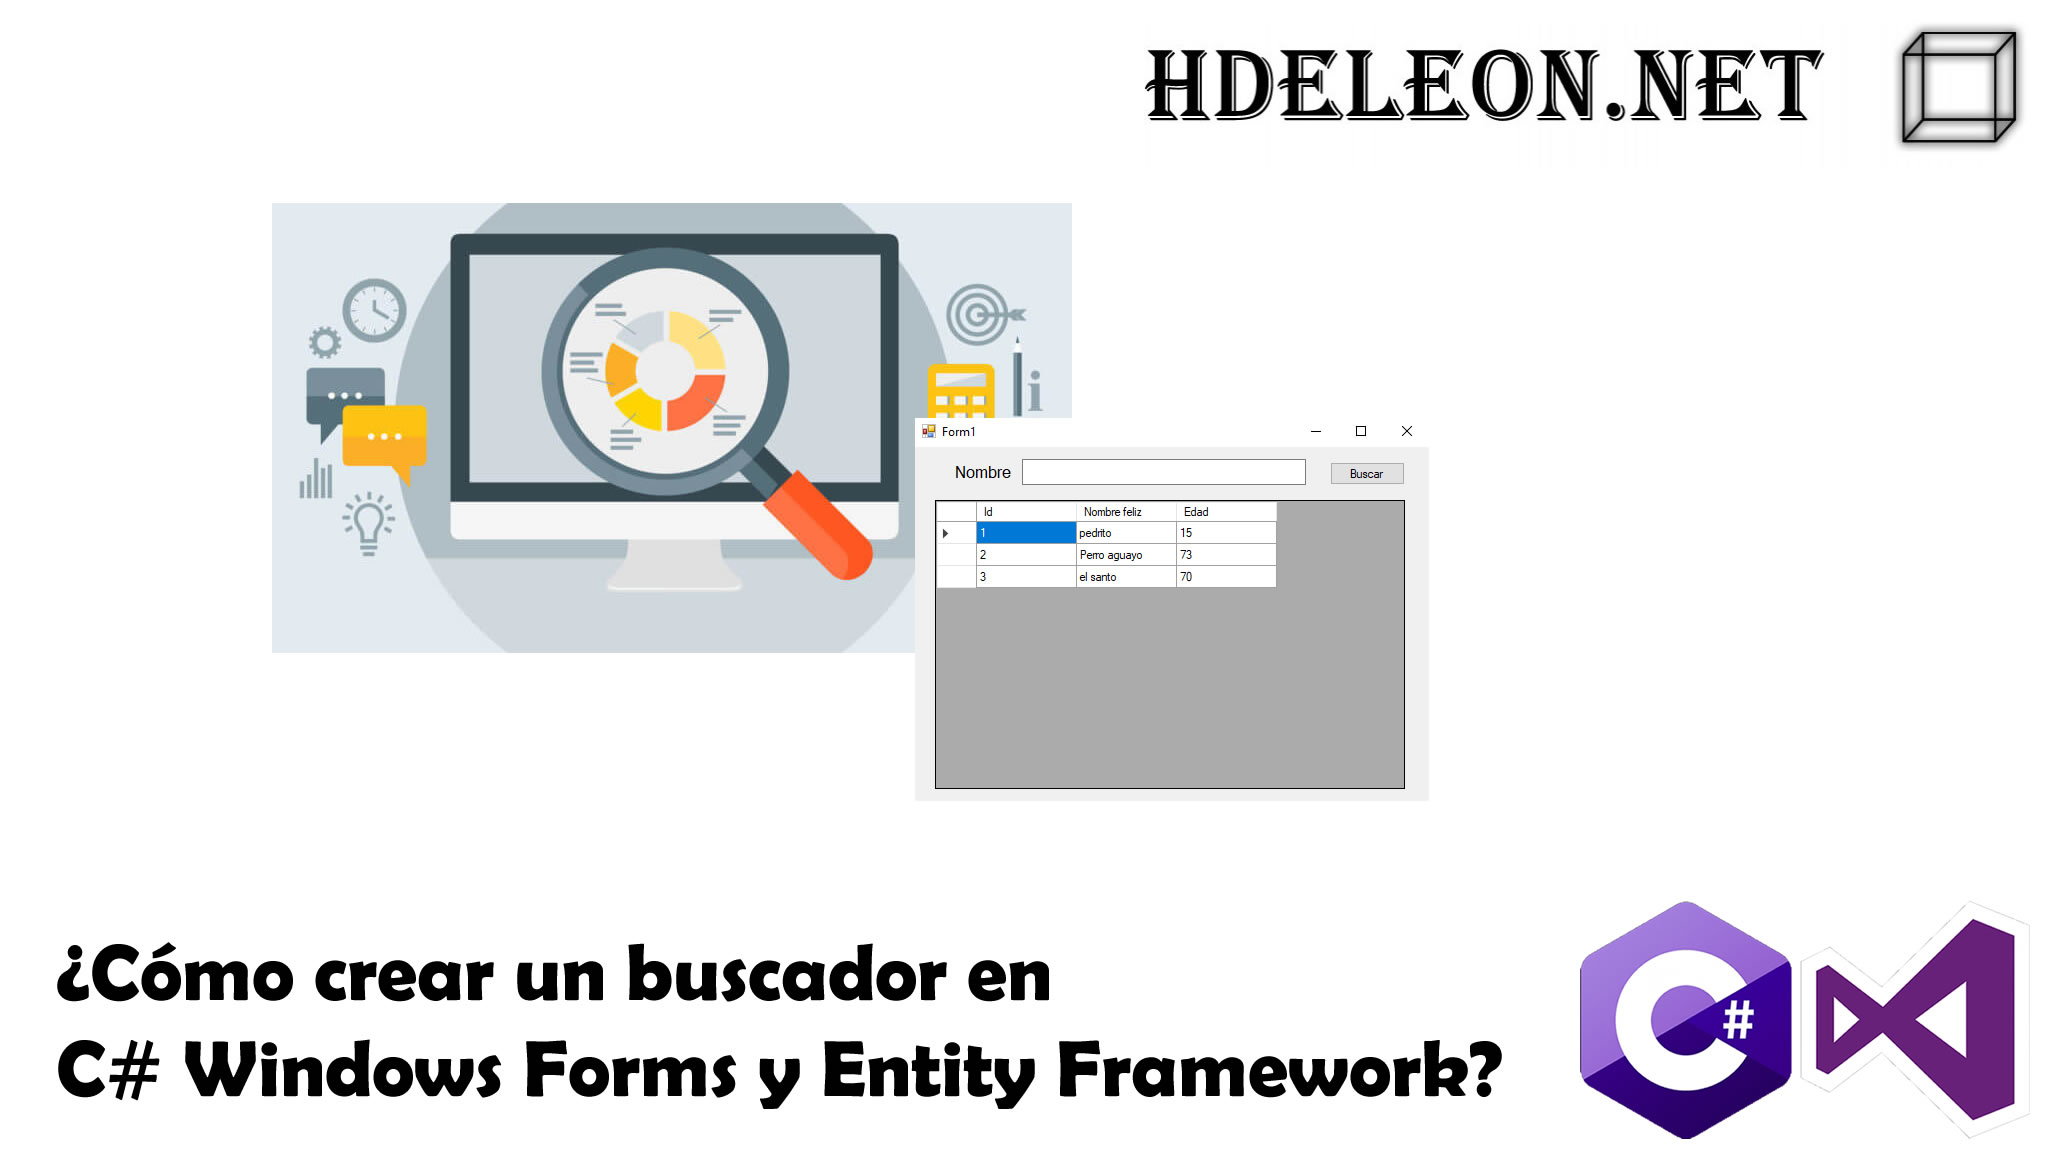 ¿Cómo crear un buscador en C# Windows Forms y Entity Framework?